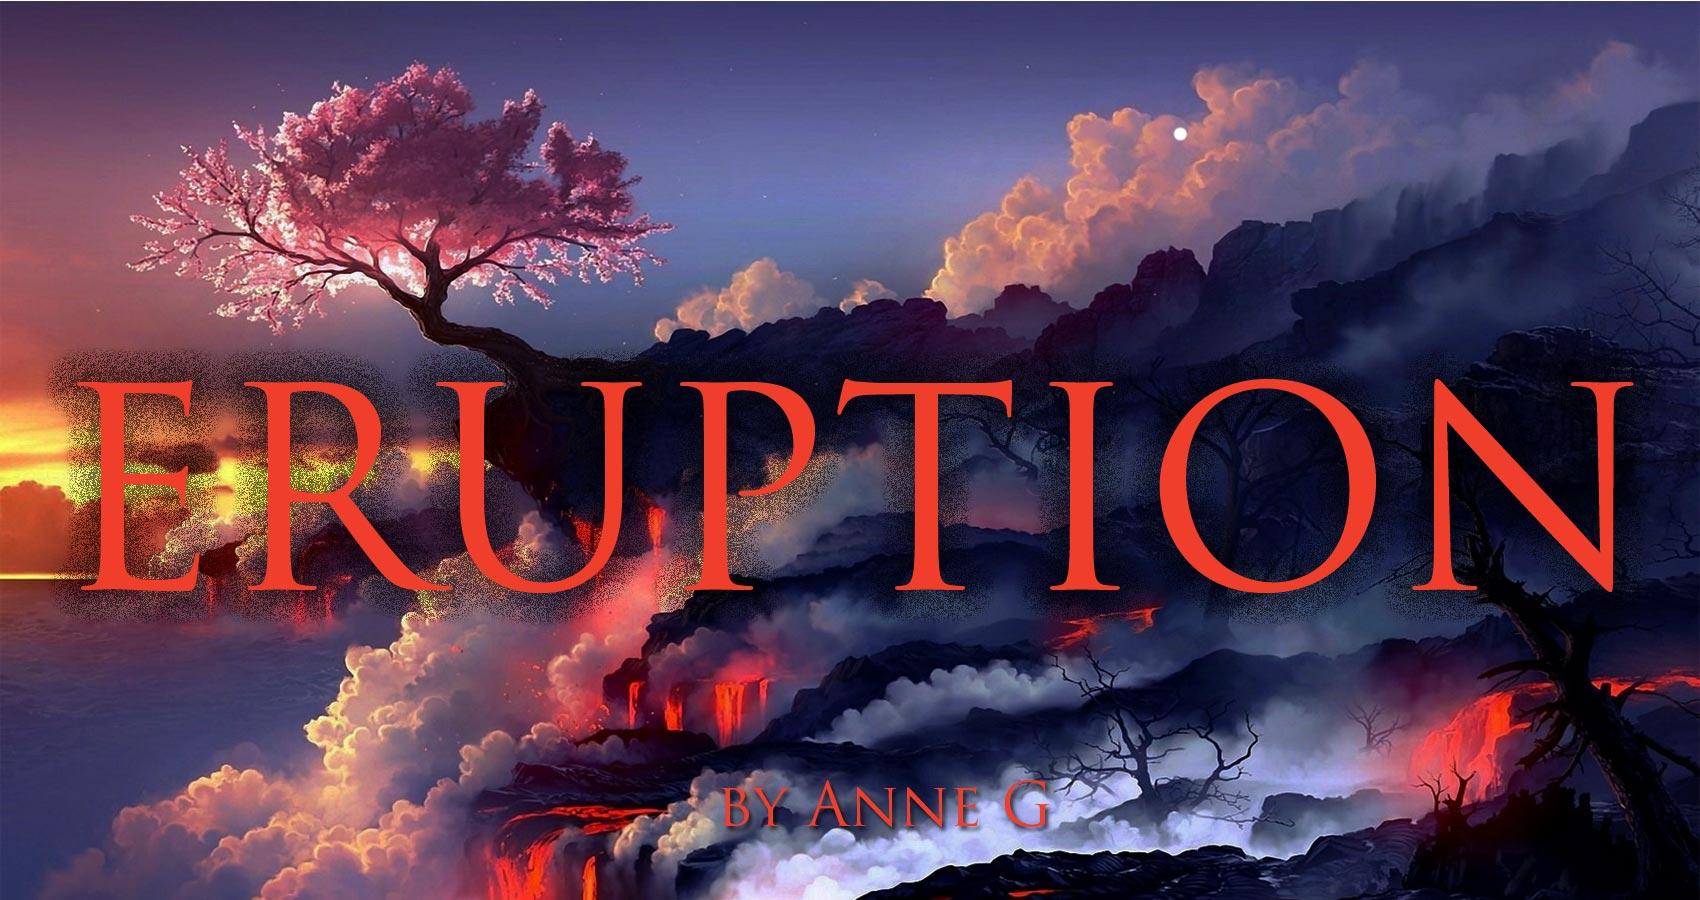 Eruption by Anne G at Spillwords.com